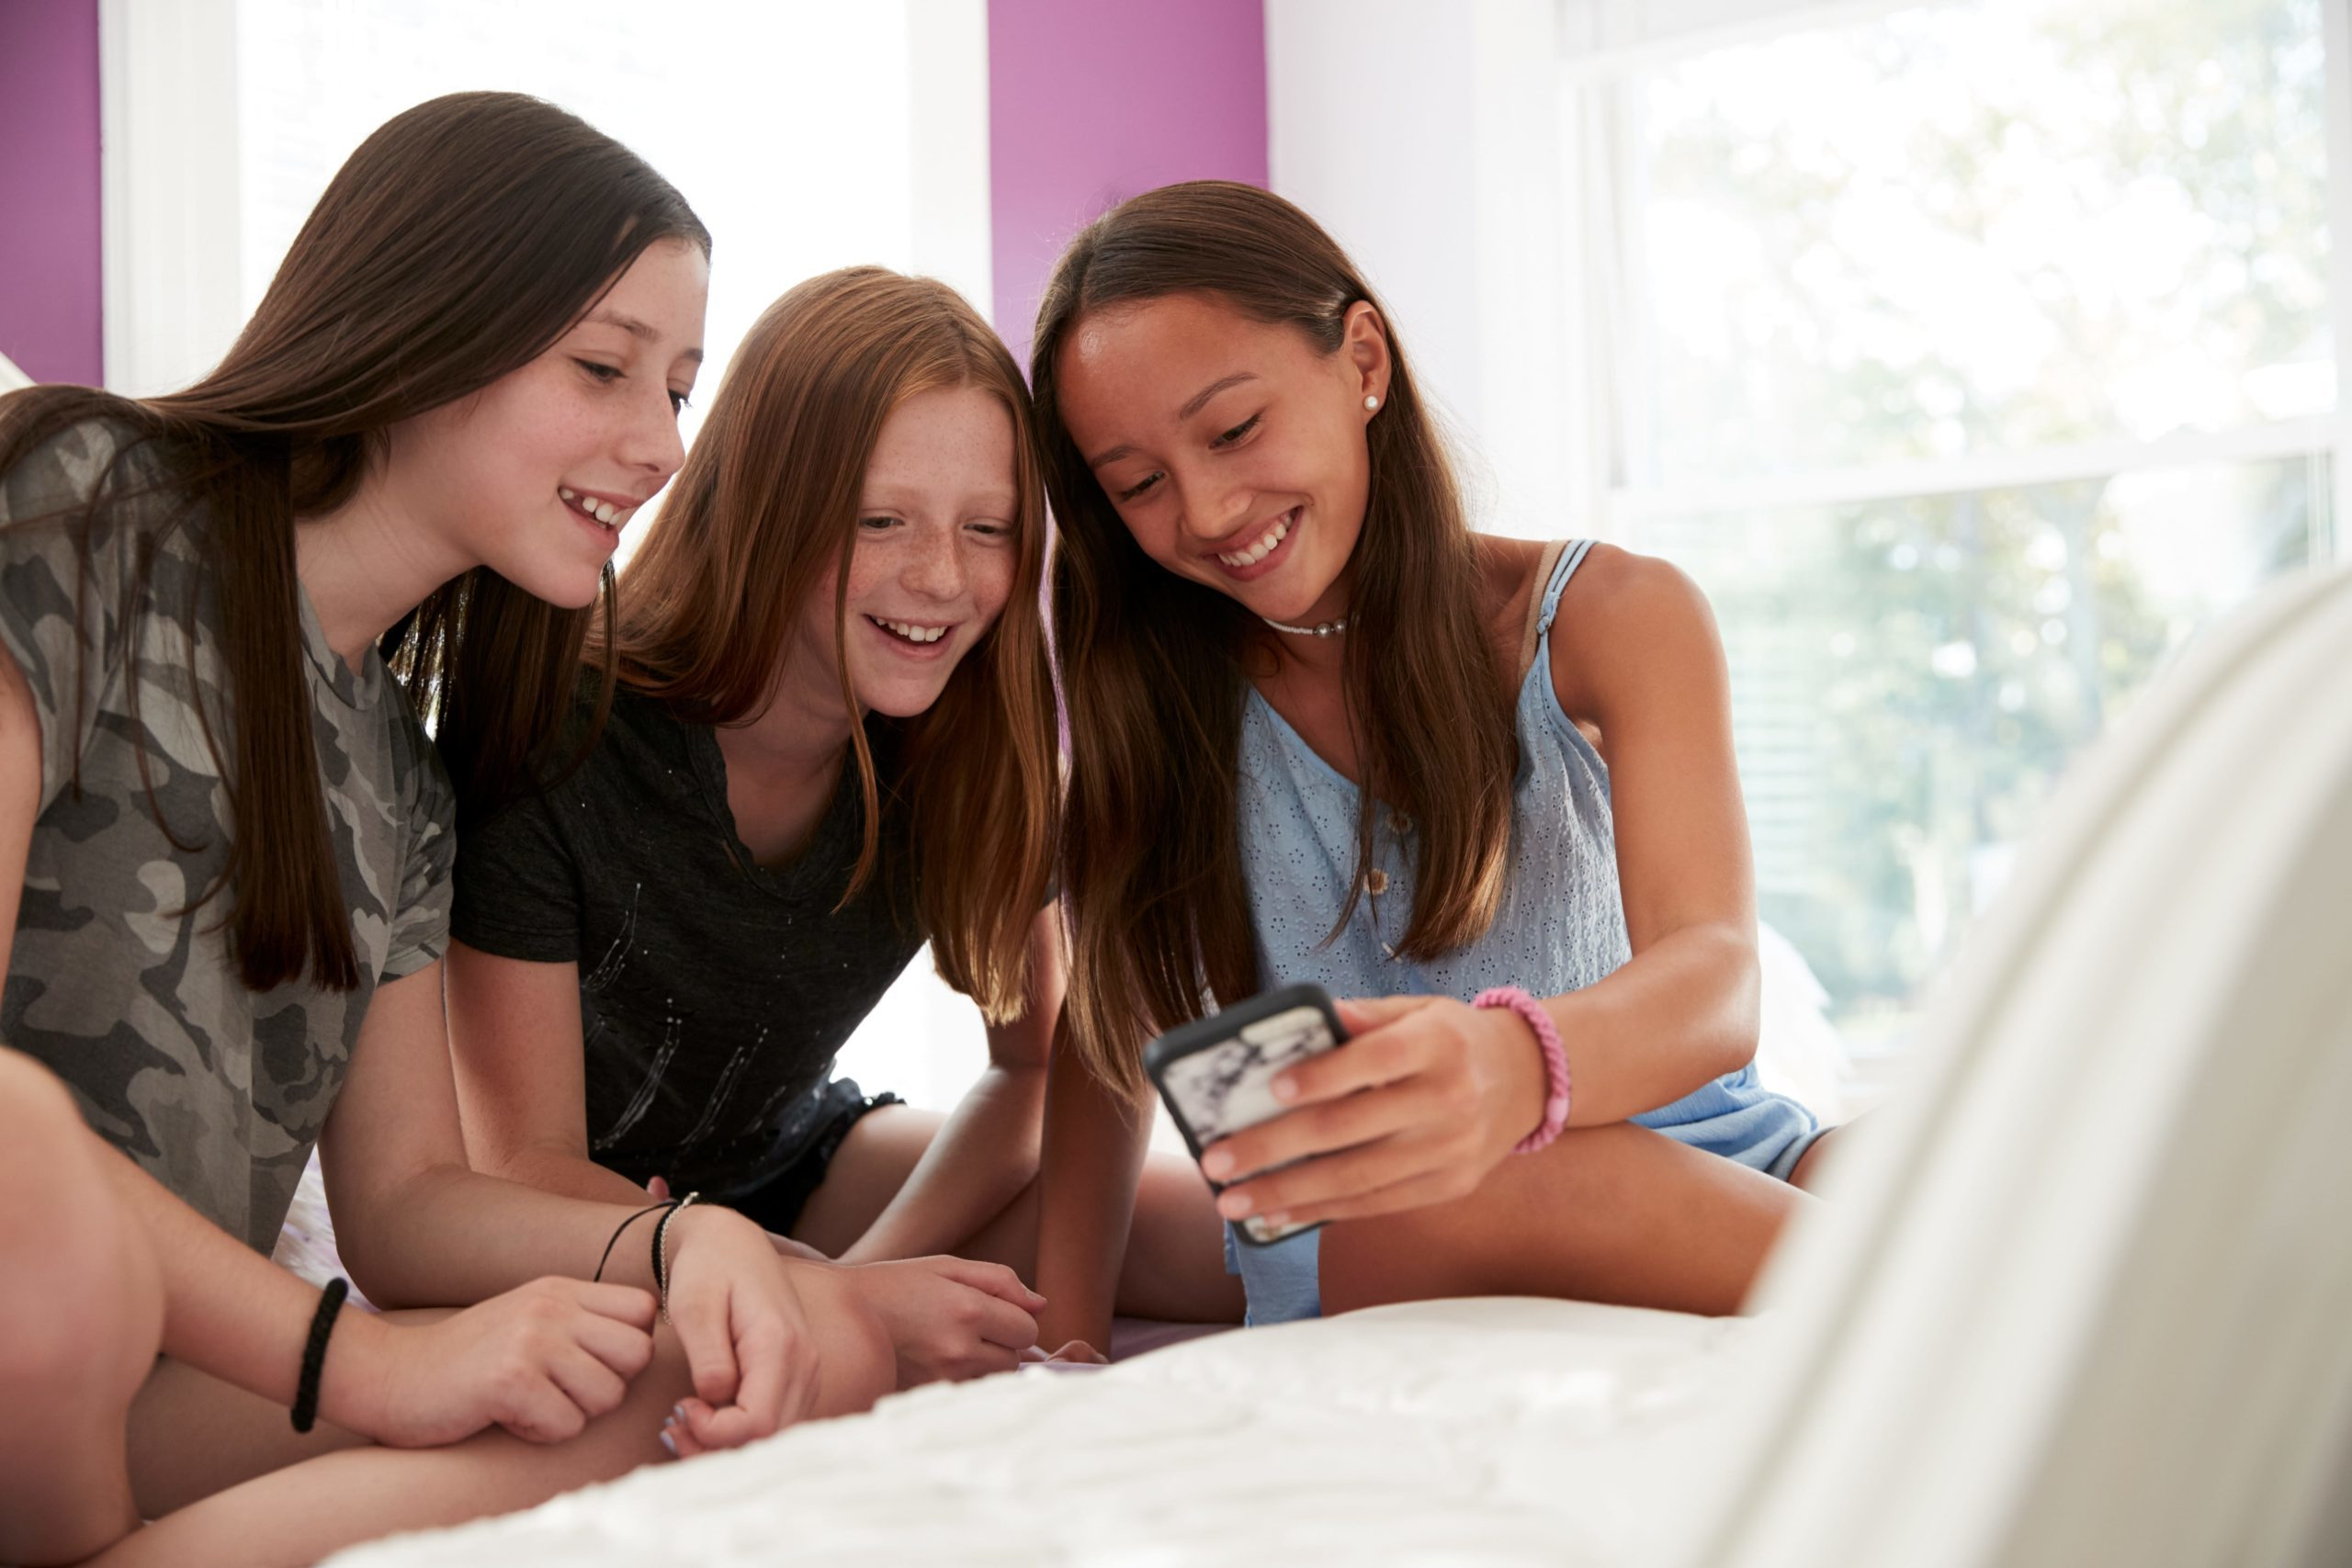 Young Teen Girls Pic photo 7